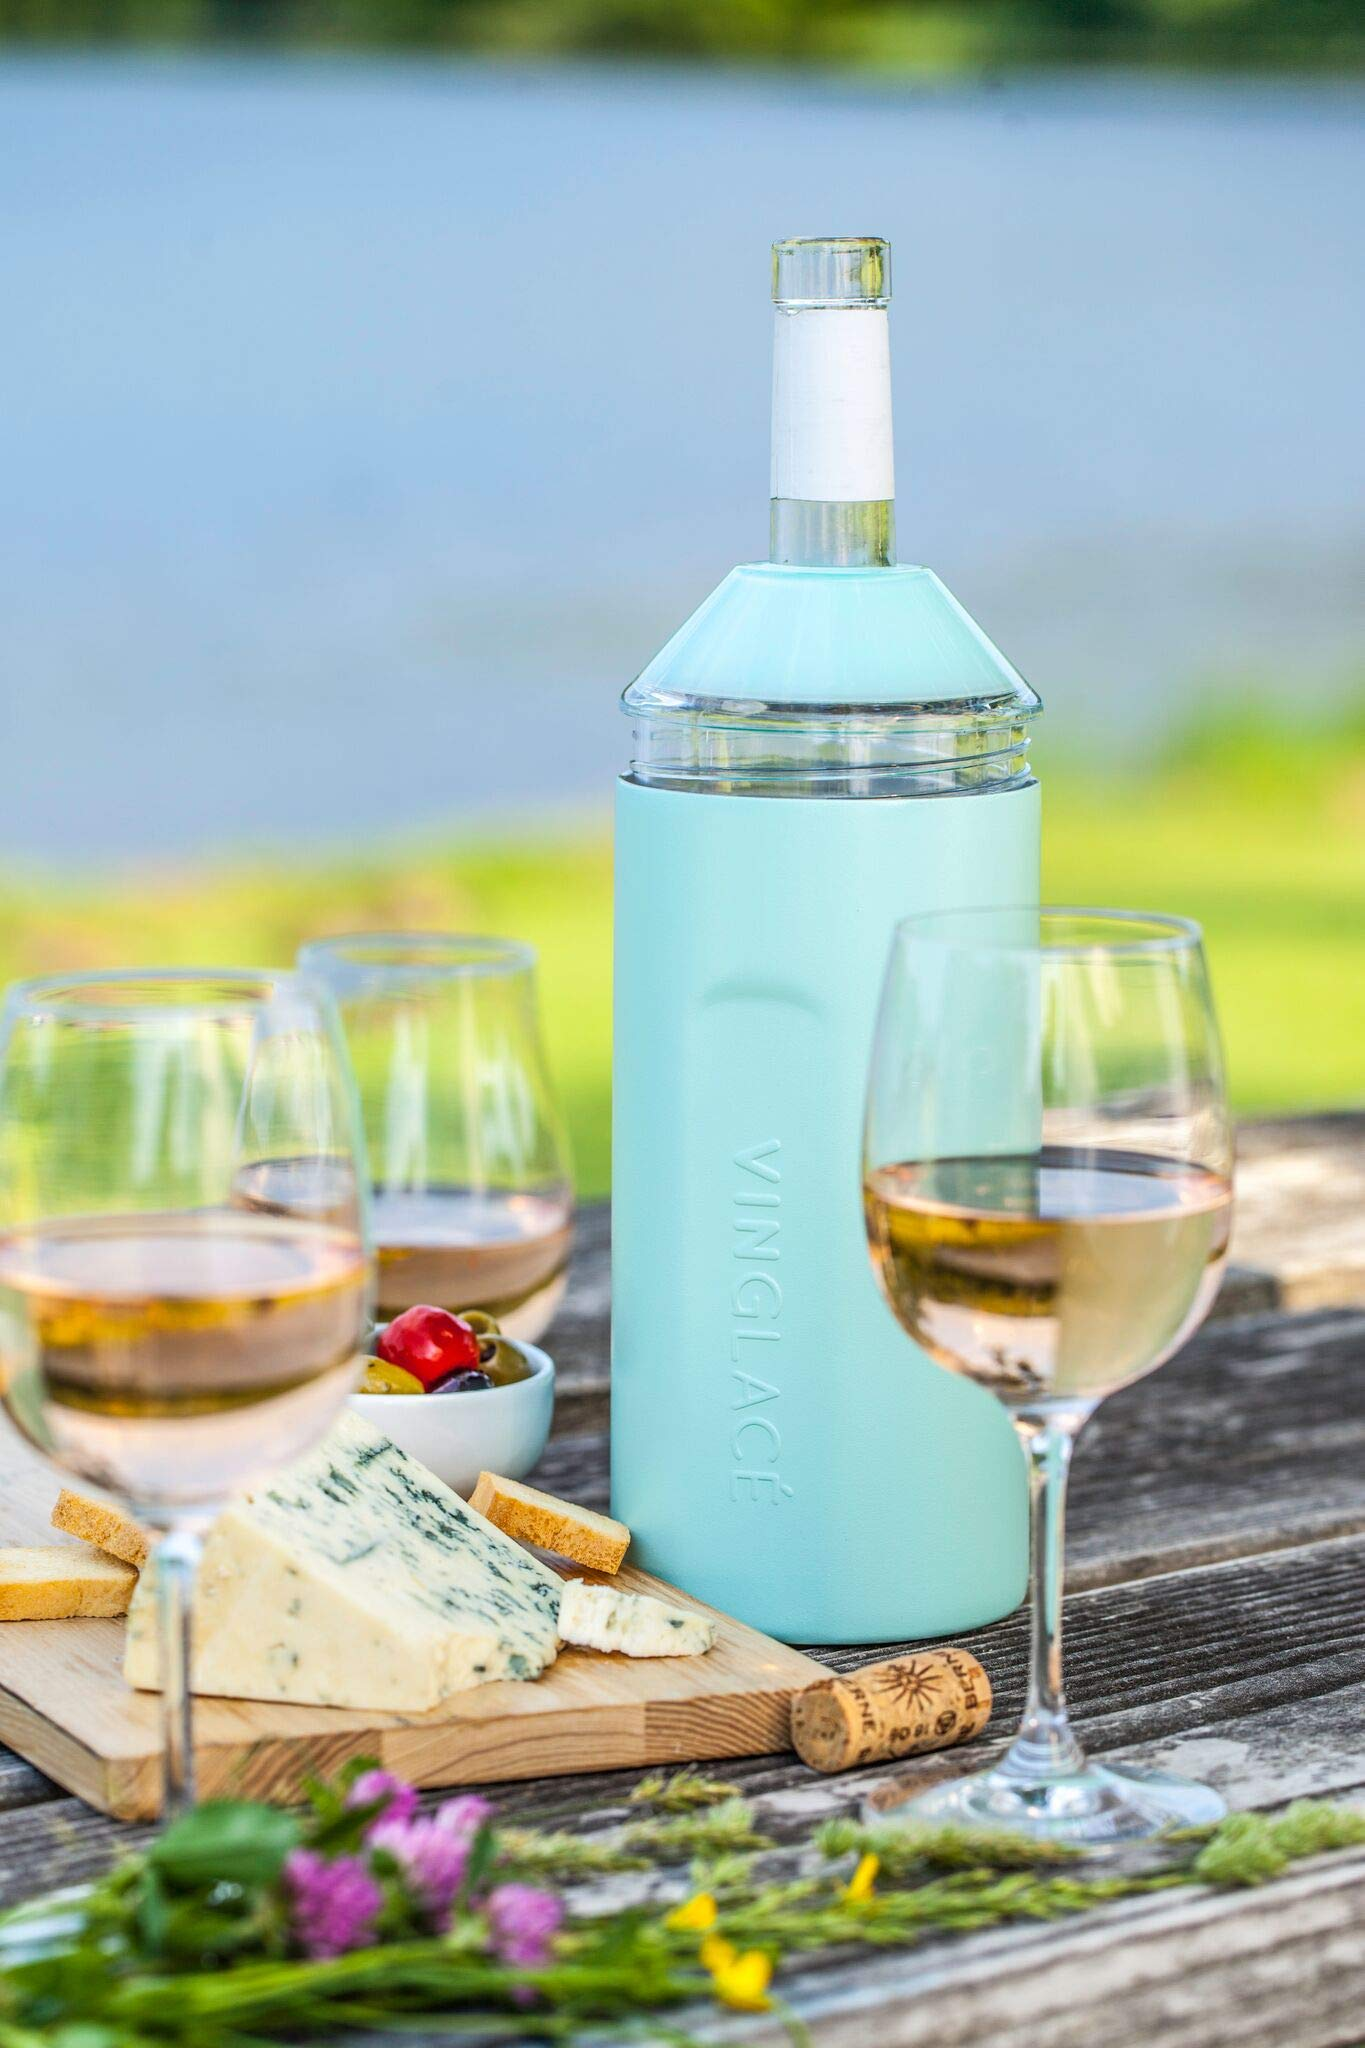 Vinglacé Wine Bottle Insulator | Stainless Steel | Double Walled | Vacuum Insulated | Tritan Plastic Adjustable Top | Keeps Wine & Champagne Cold for Hours | 10'' x 11'' x 12'' | Sea Glass Green